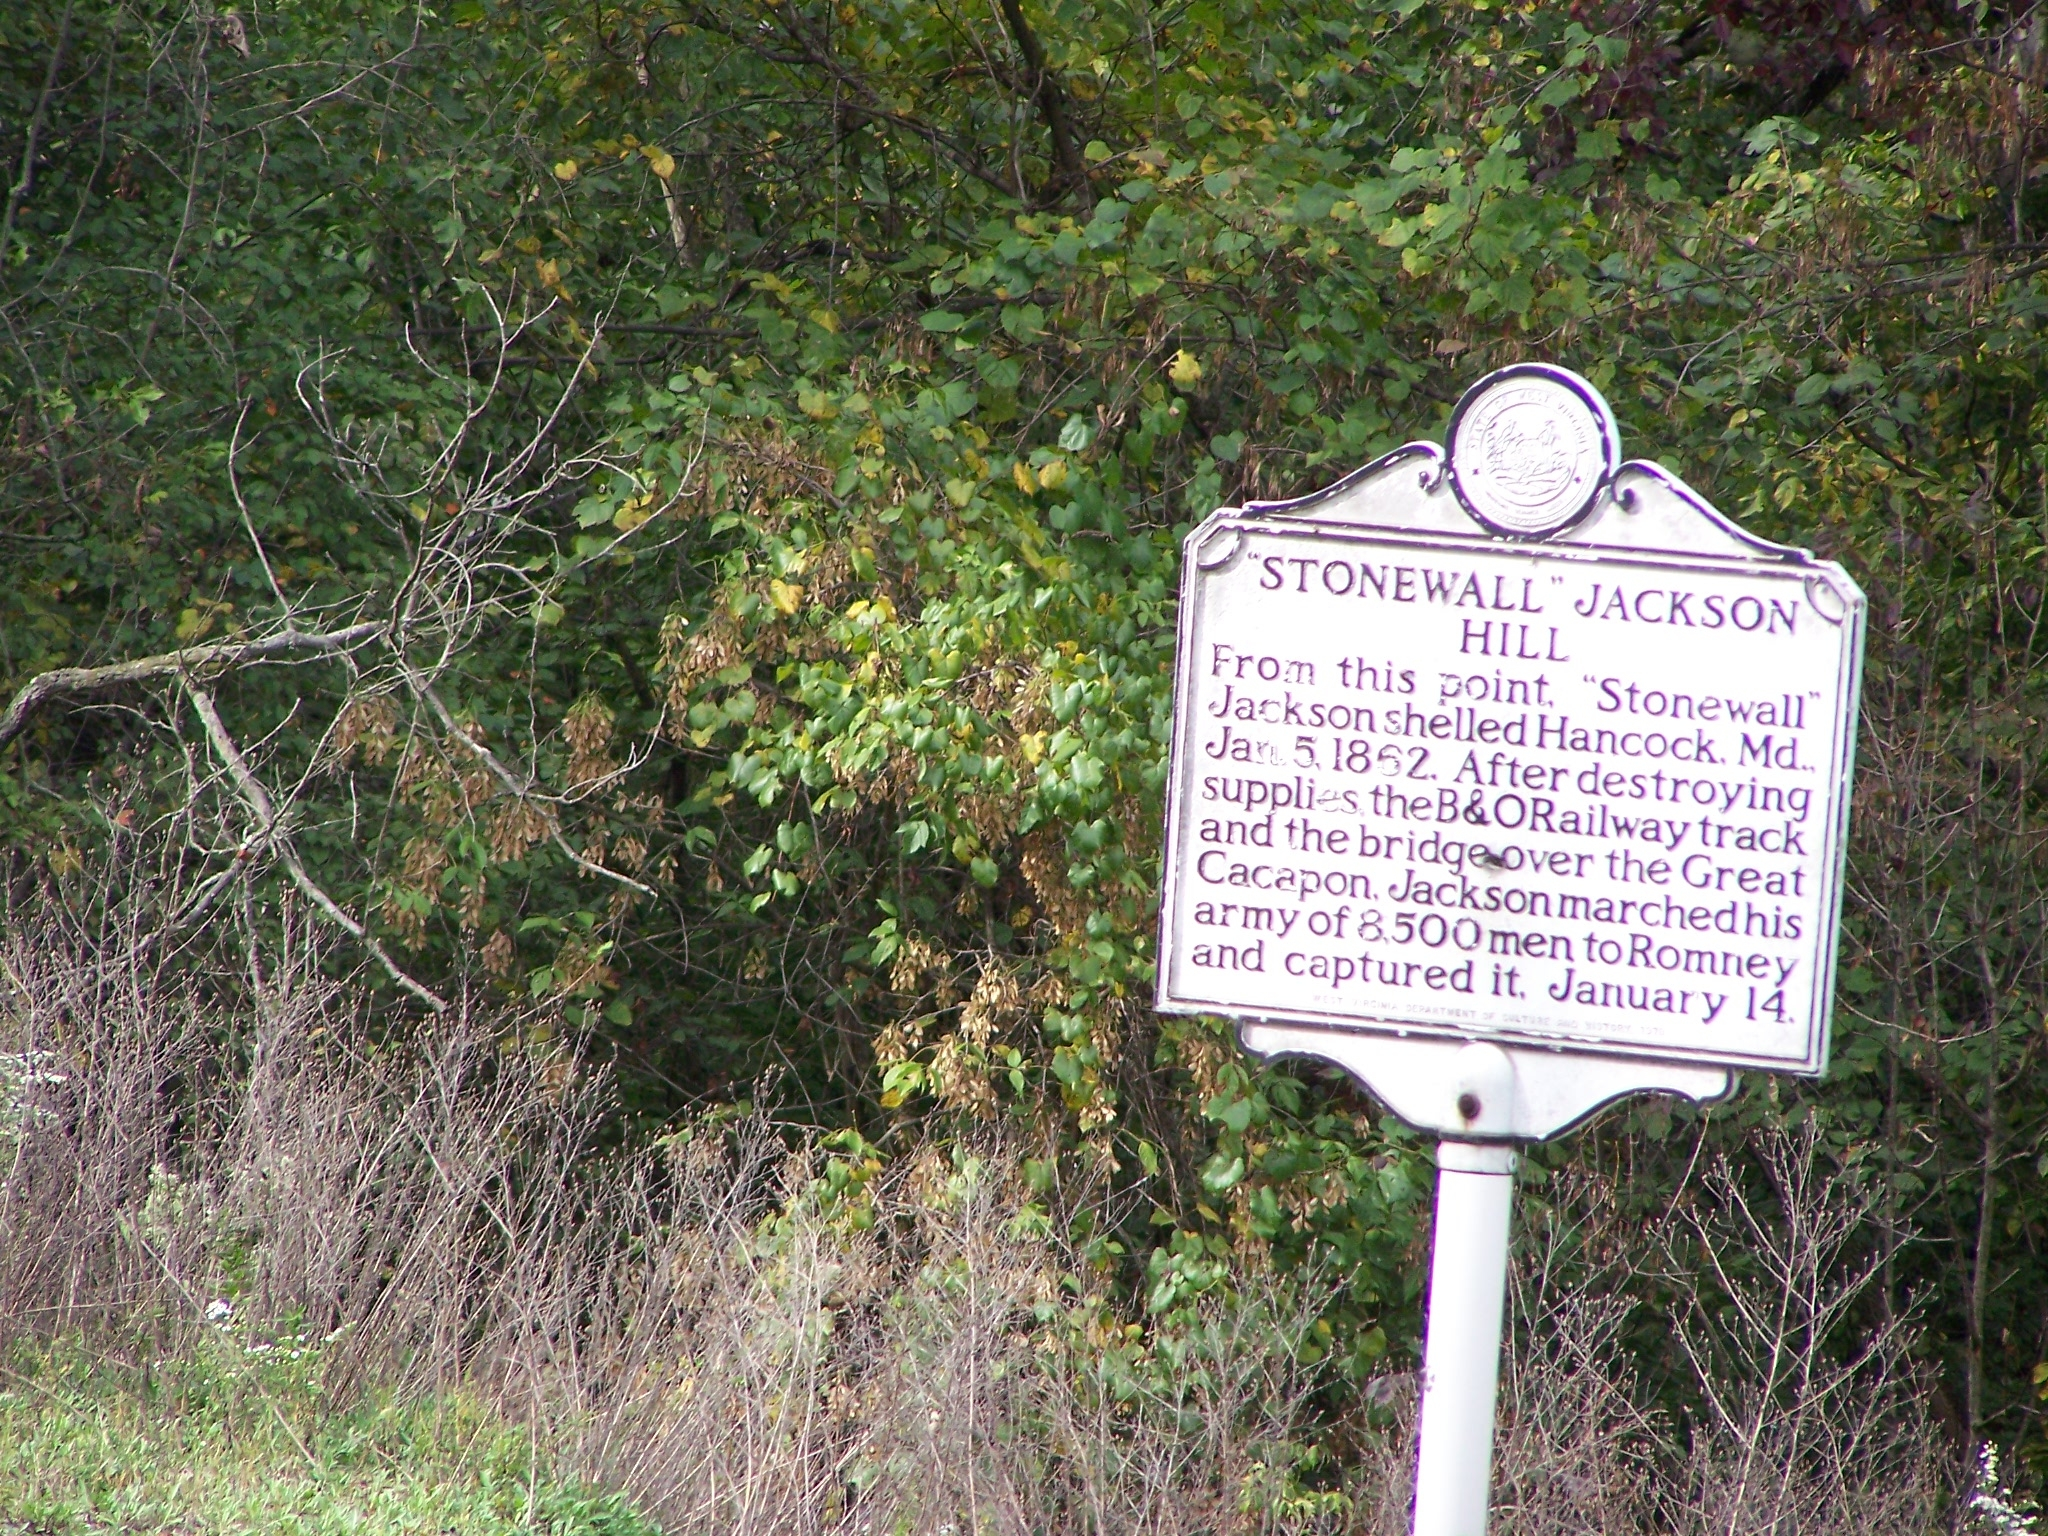 Historical marker for Stonewall Jackson Hill along US 522.